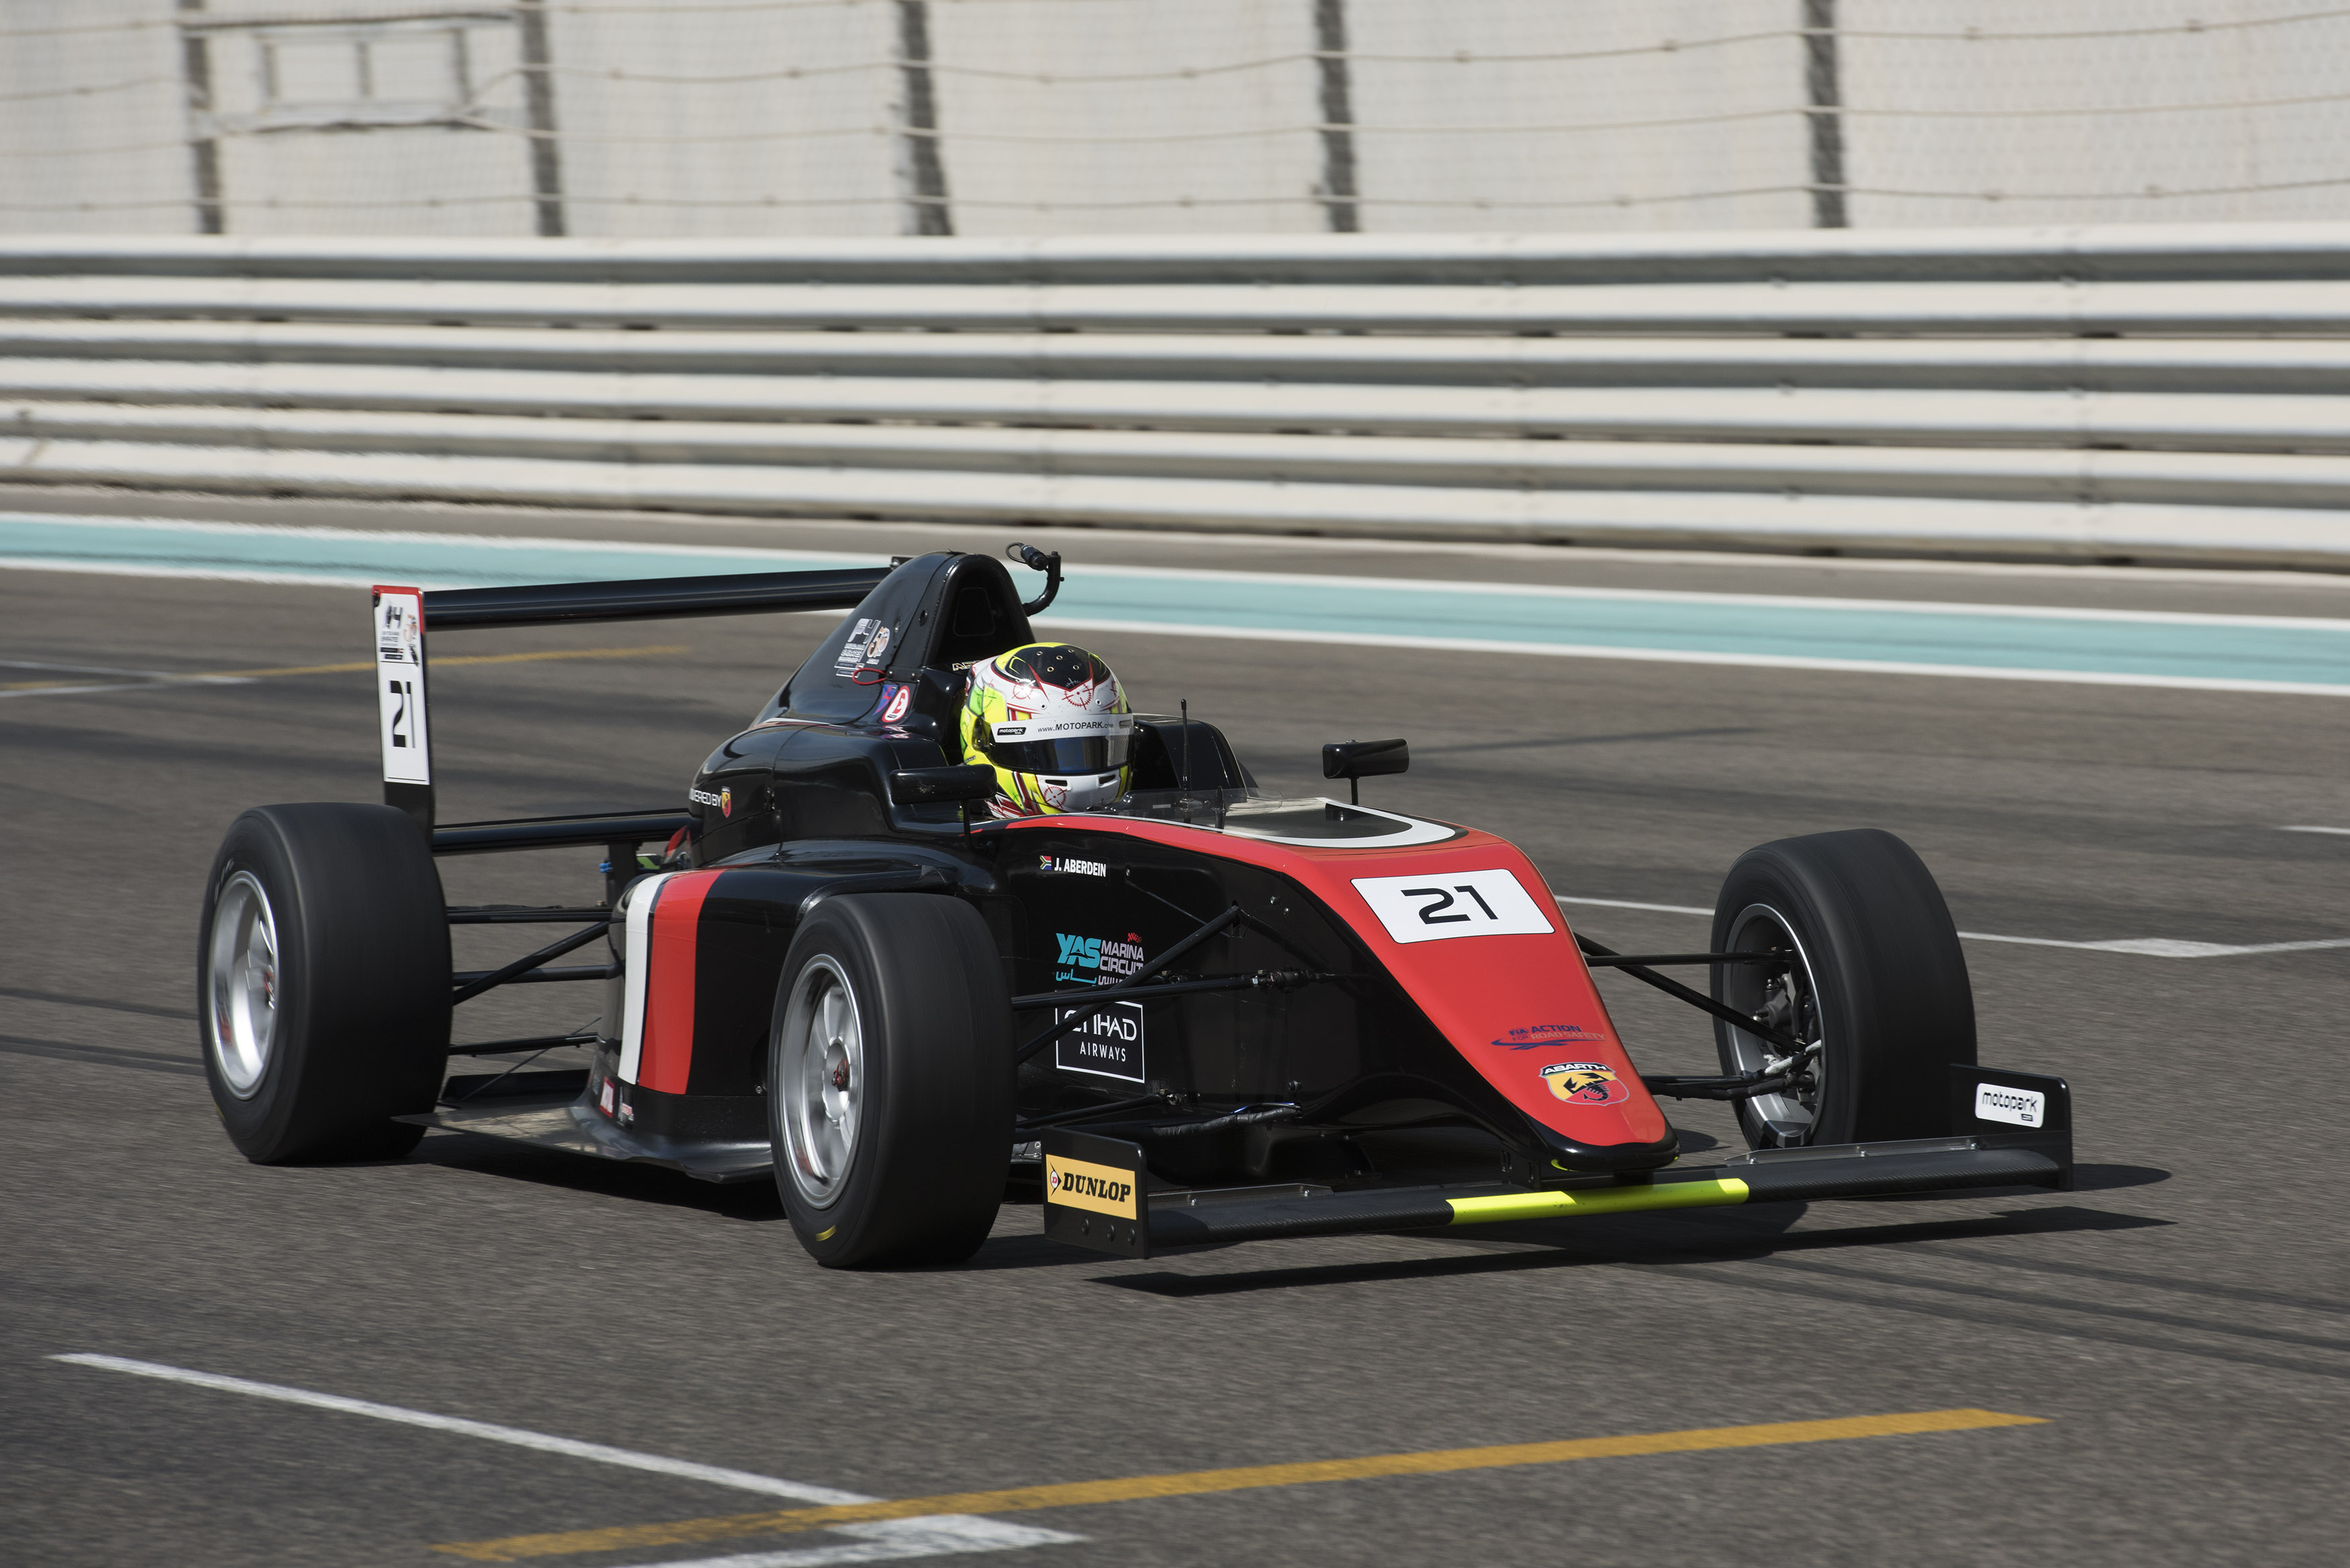 TEAM MOTOPARK CLAIMS FIRST HONOURS AT INAUGURAL F4UAE TROPHY EVENT IN ABU DHABI